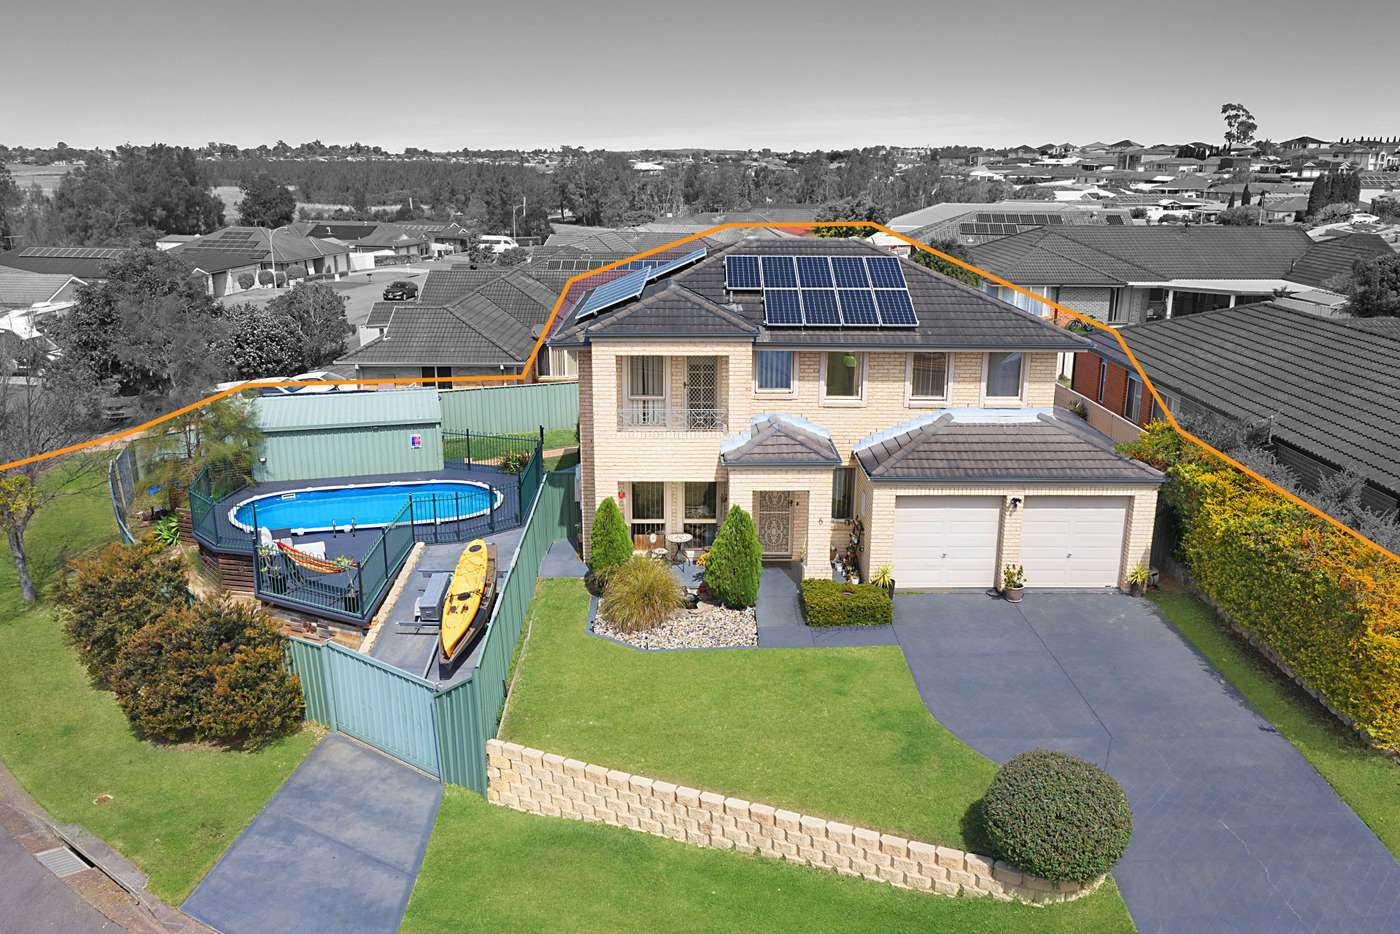 Main view of Homely house listing, 6 Featherwood Place, Thornton NSW 2322